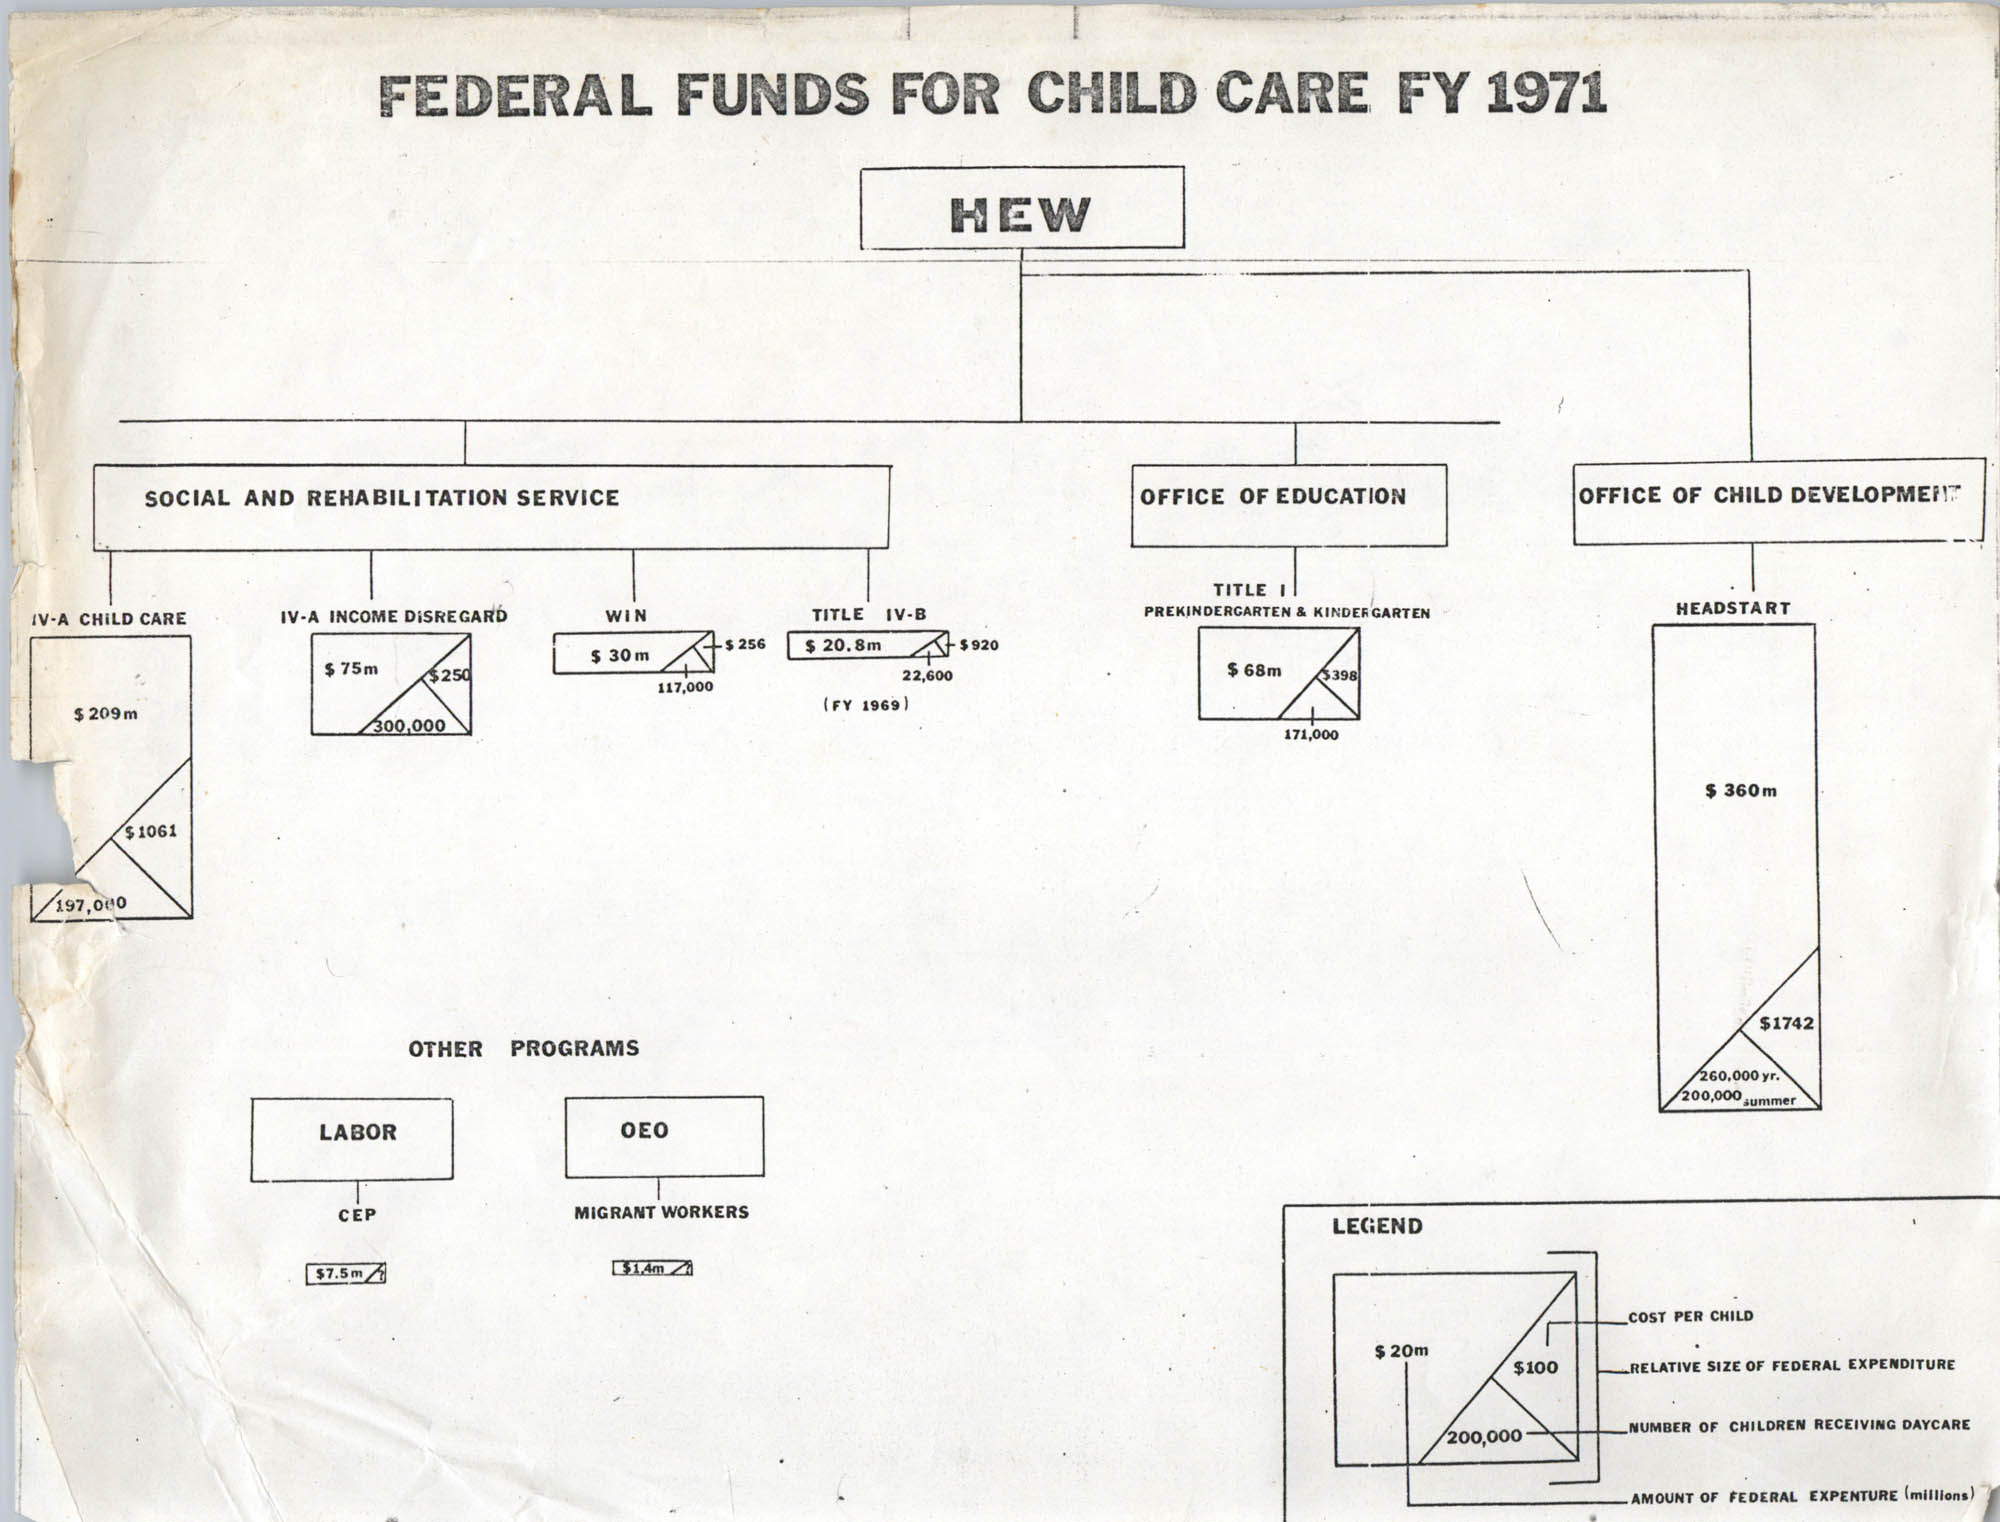 Federal Funds for Child Care FY 1971